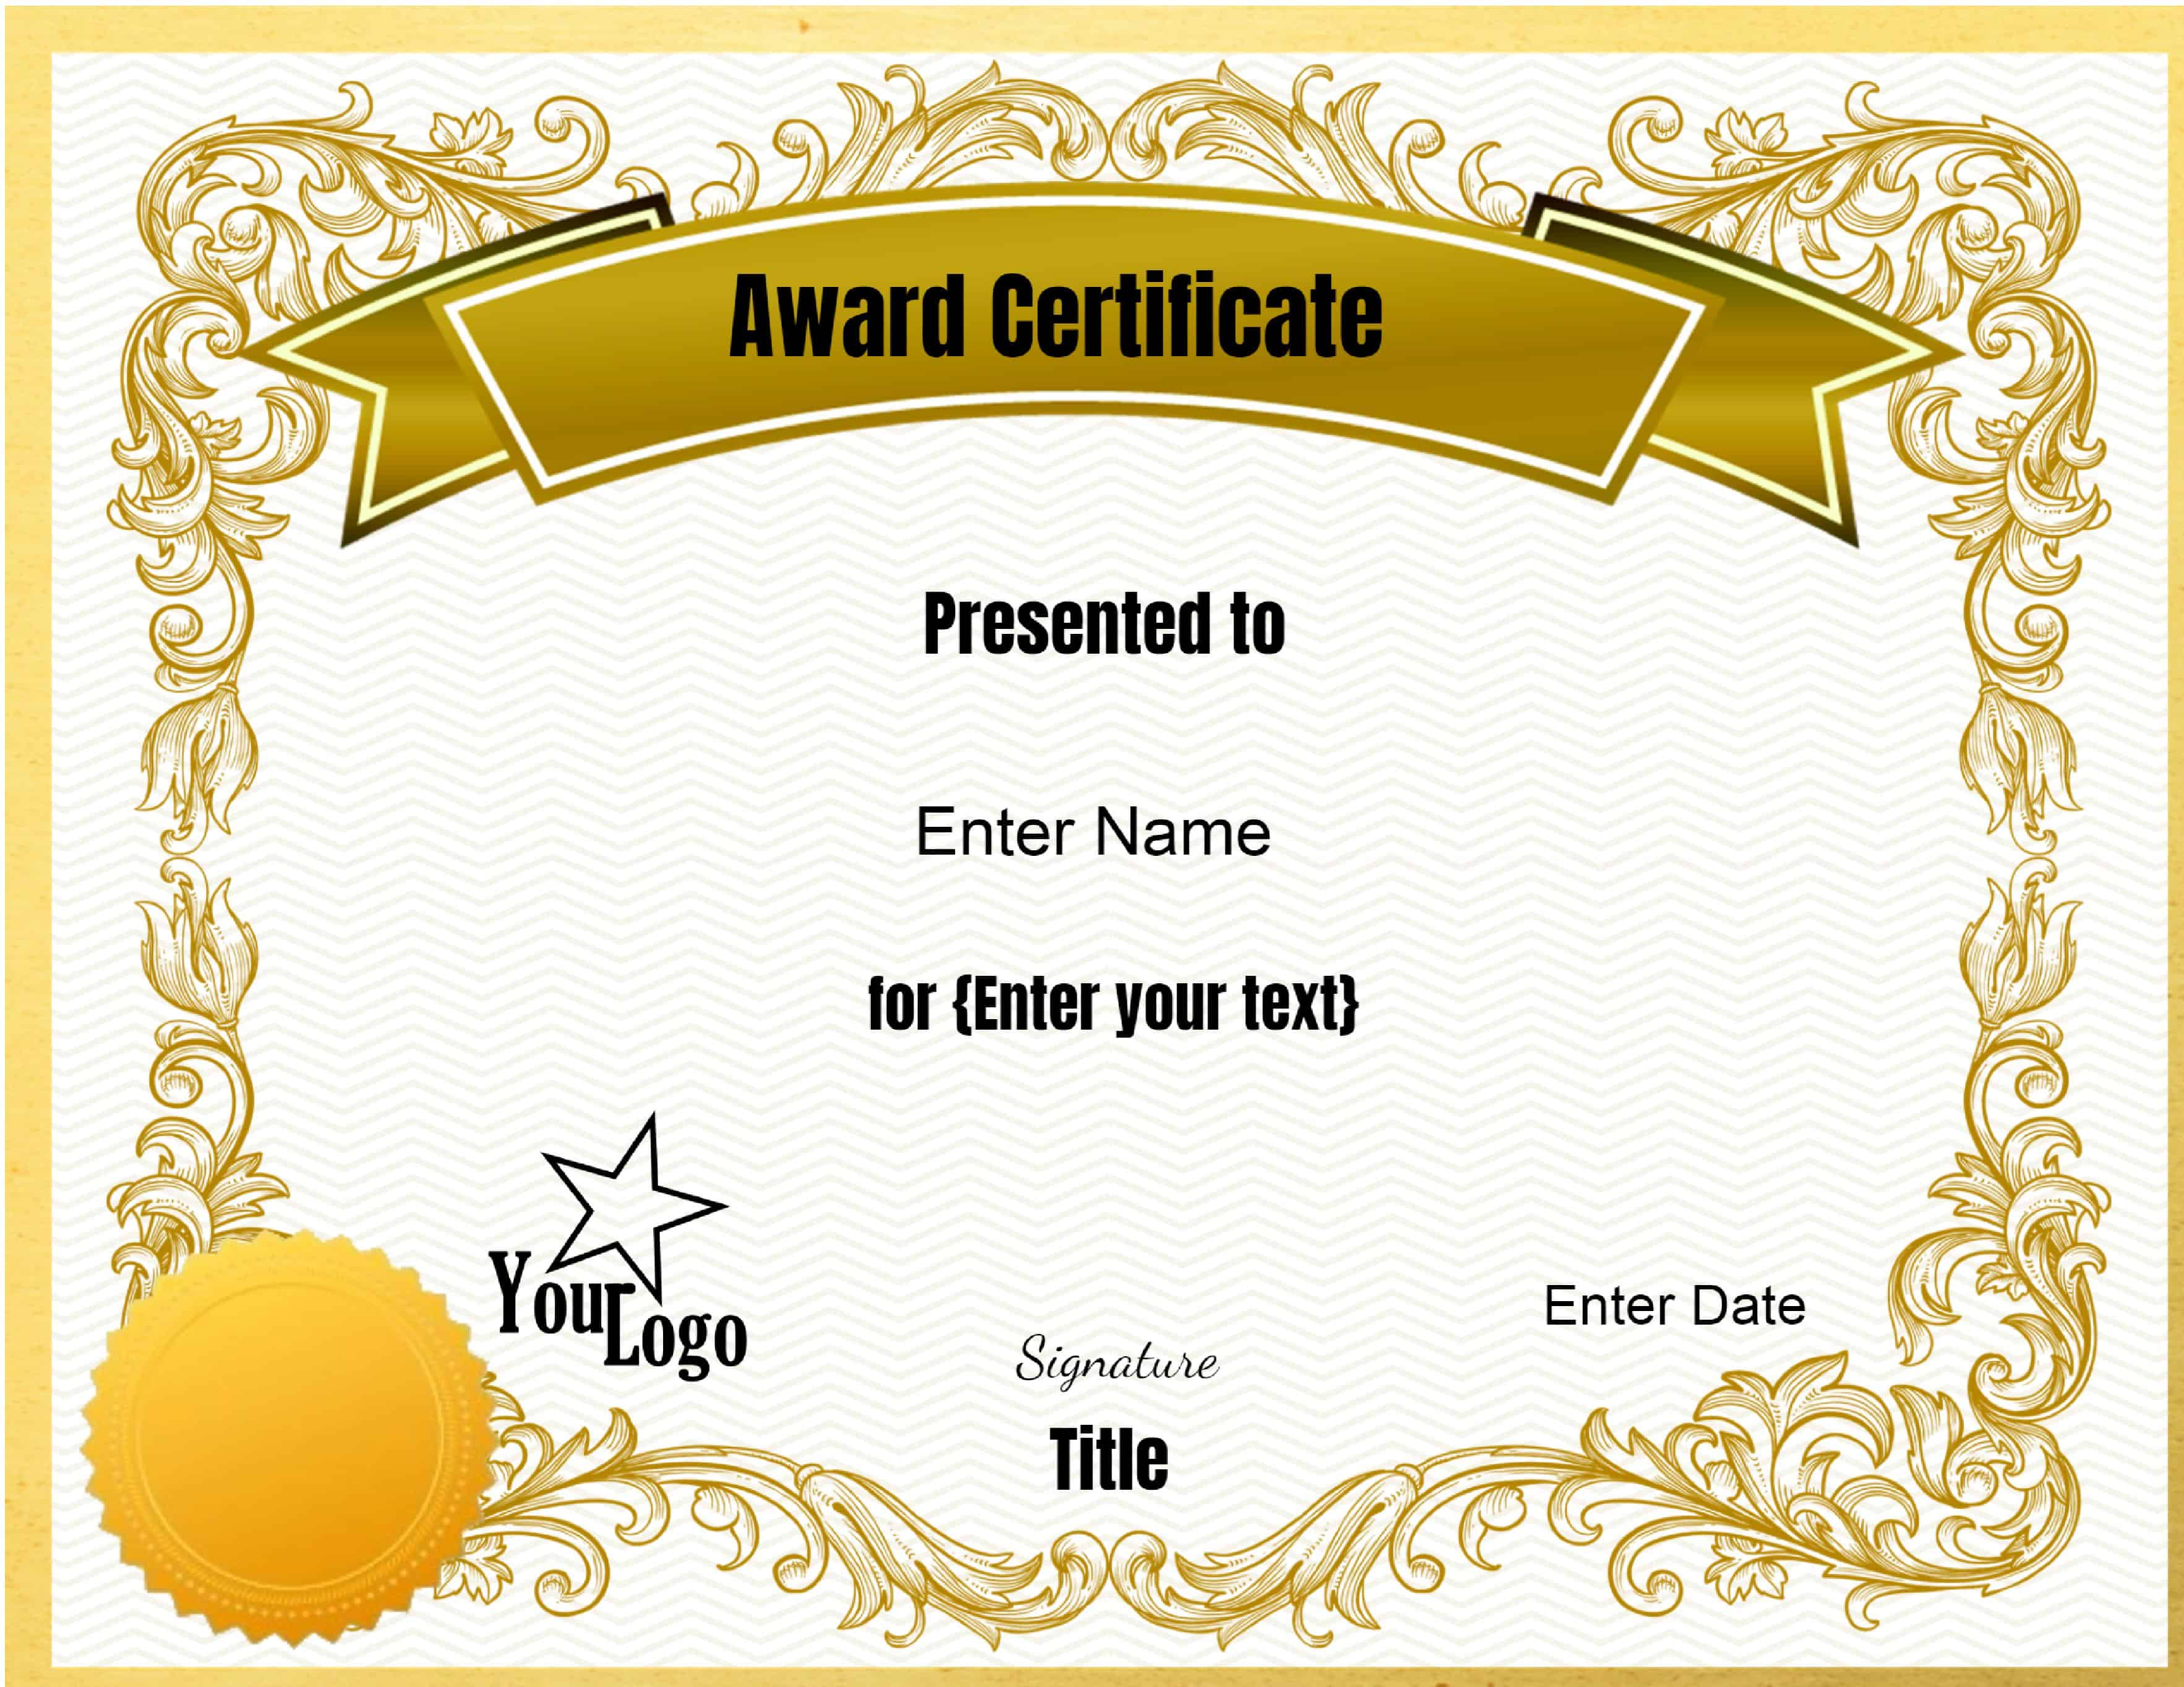 Free Editable Certificate Template Customize Online Print At Home